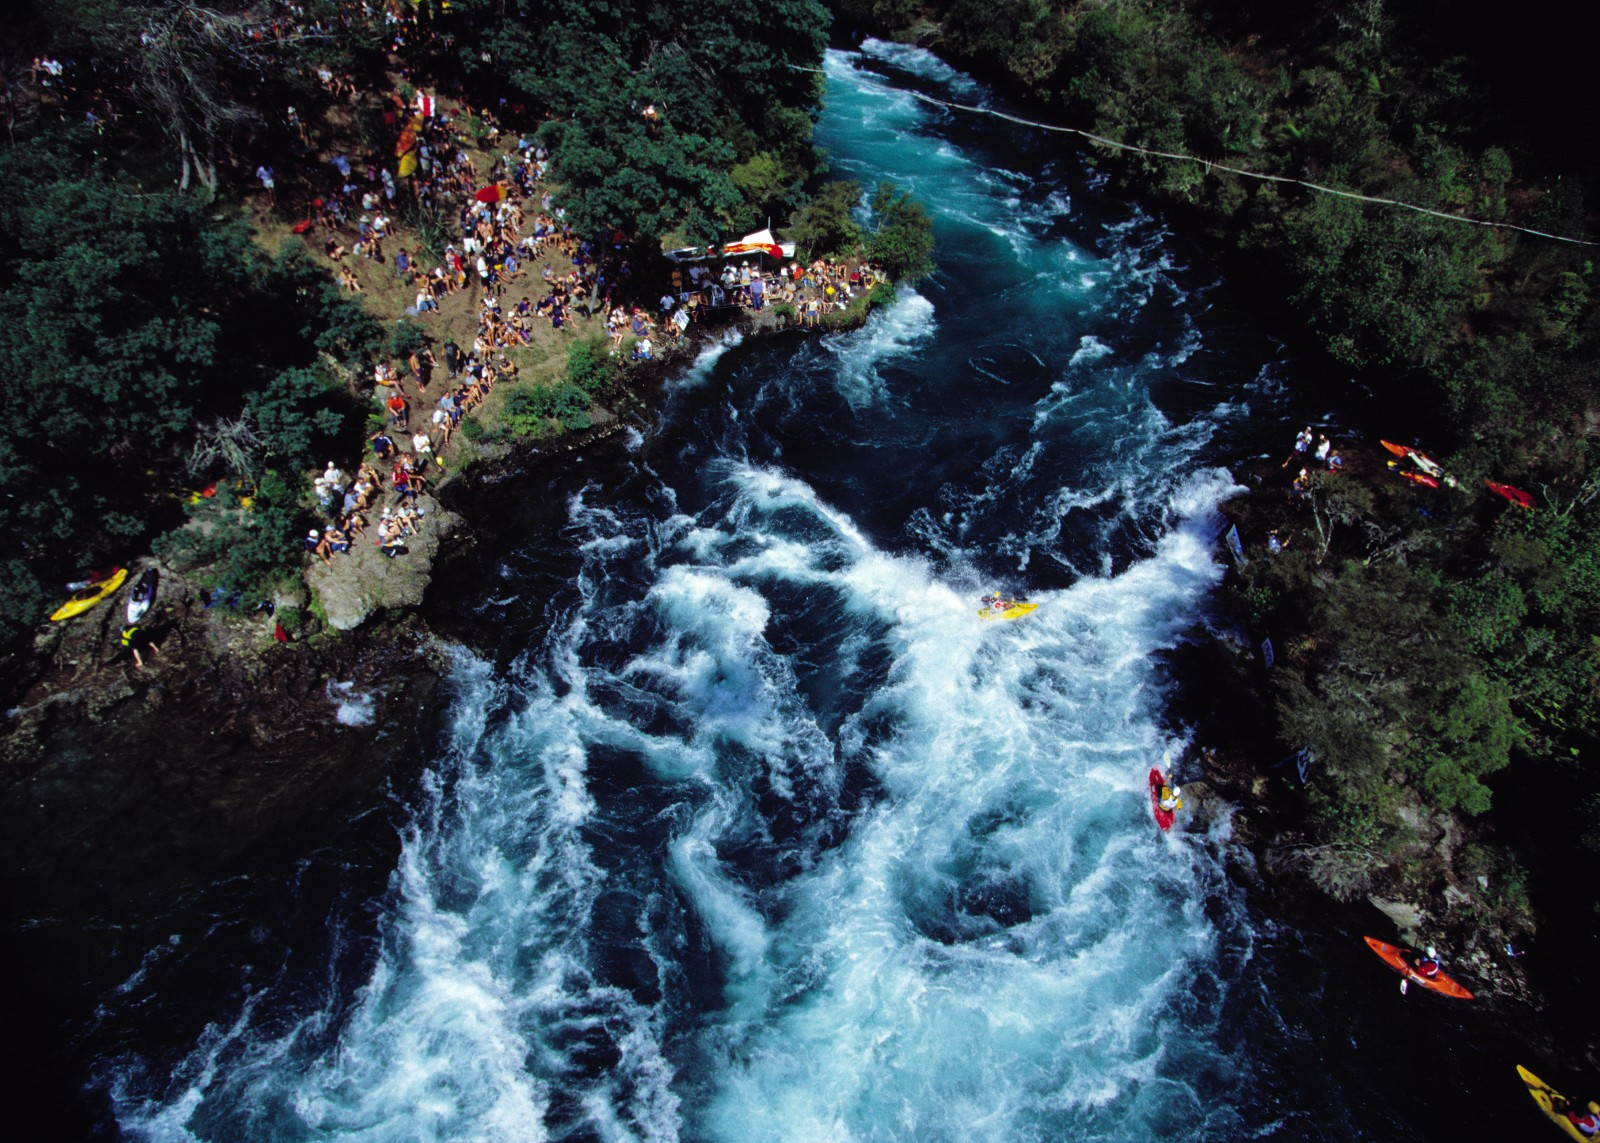 "The Fulljames Rapid, or Ngaawapurua, lies 15 km downriver of the famous Huka Falls. Here the rocky riverbed forms a permanent standing wave, the dynamics of which can be exploited by paddlers to perform an array of aquatic acrobatics. In this view, the ""holding eddy,"" where kayakers wait before sprinting out to the whitewater, can be seen to the right of the rapid. The kayakers at bottom right are sneaking around a promontory to reach the eddy."